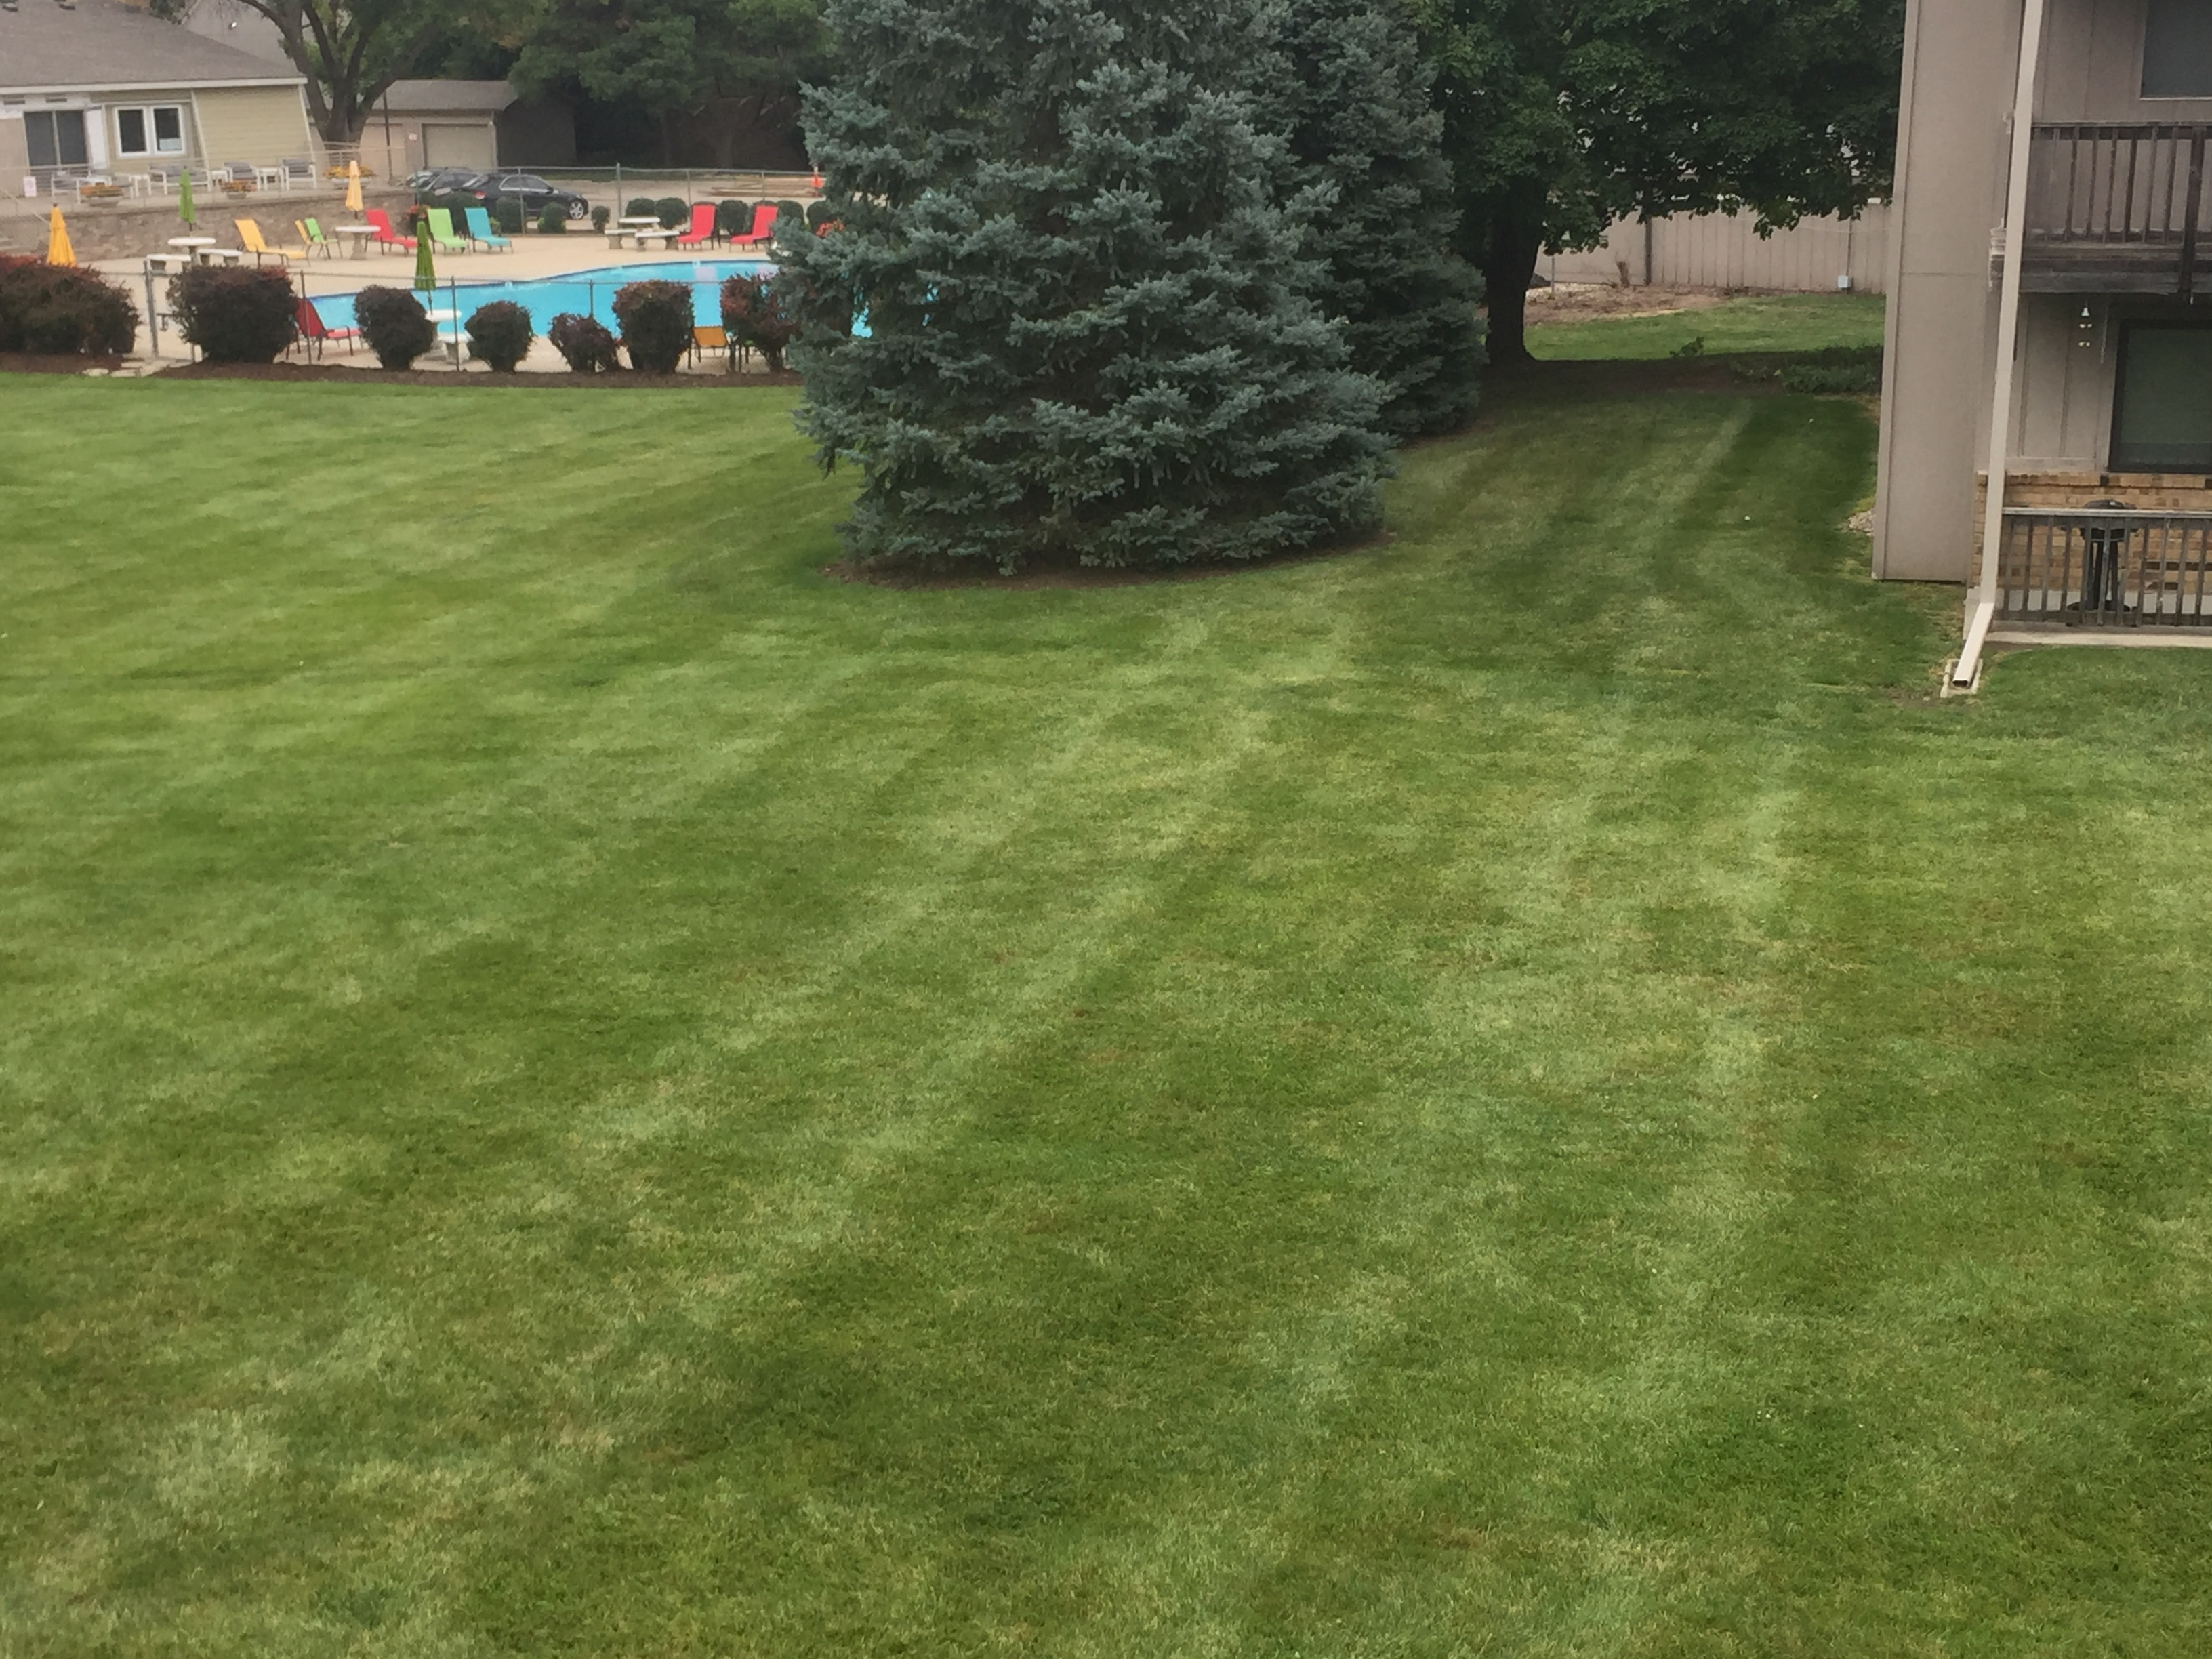 Omaha-Commerical-Lawn-Care-Above-and-Beyond